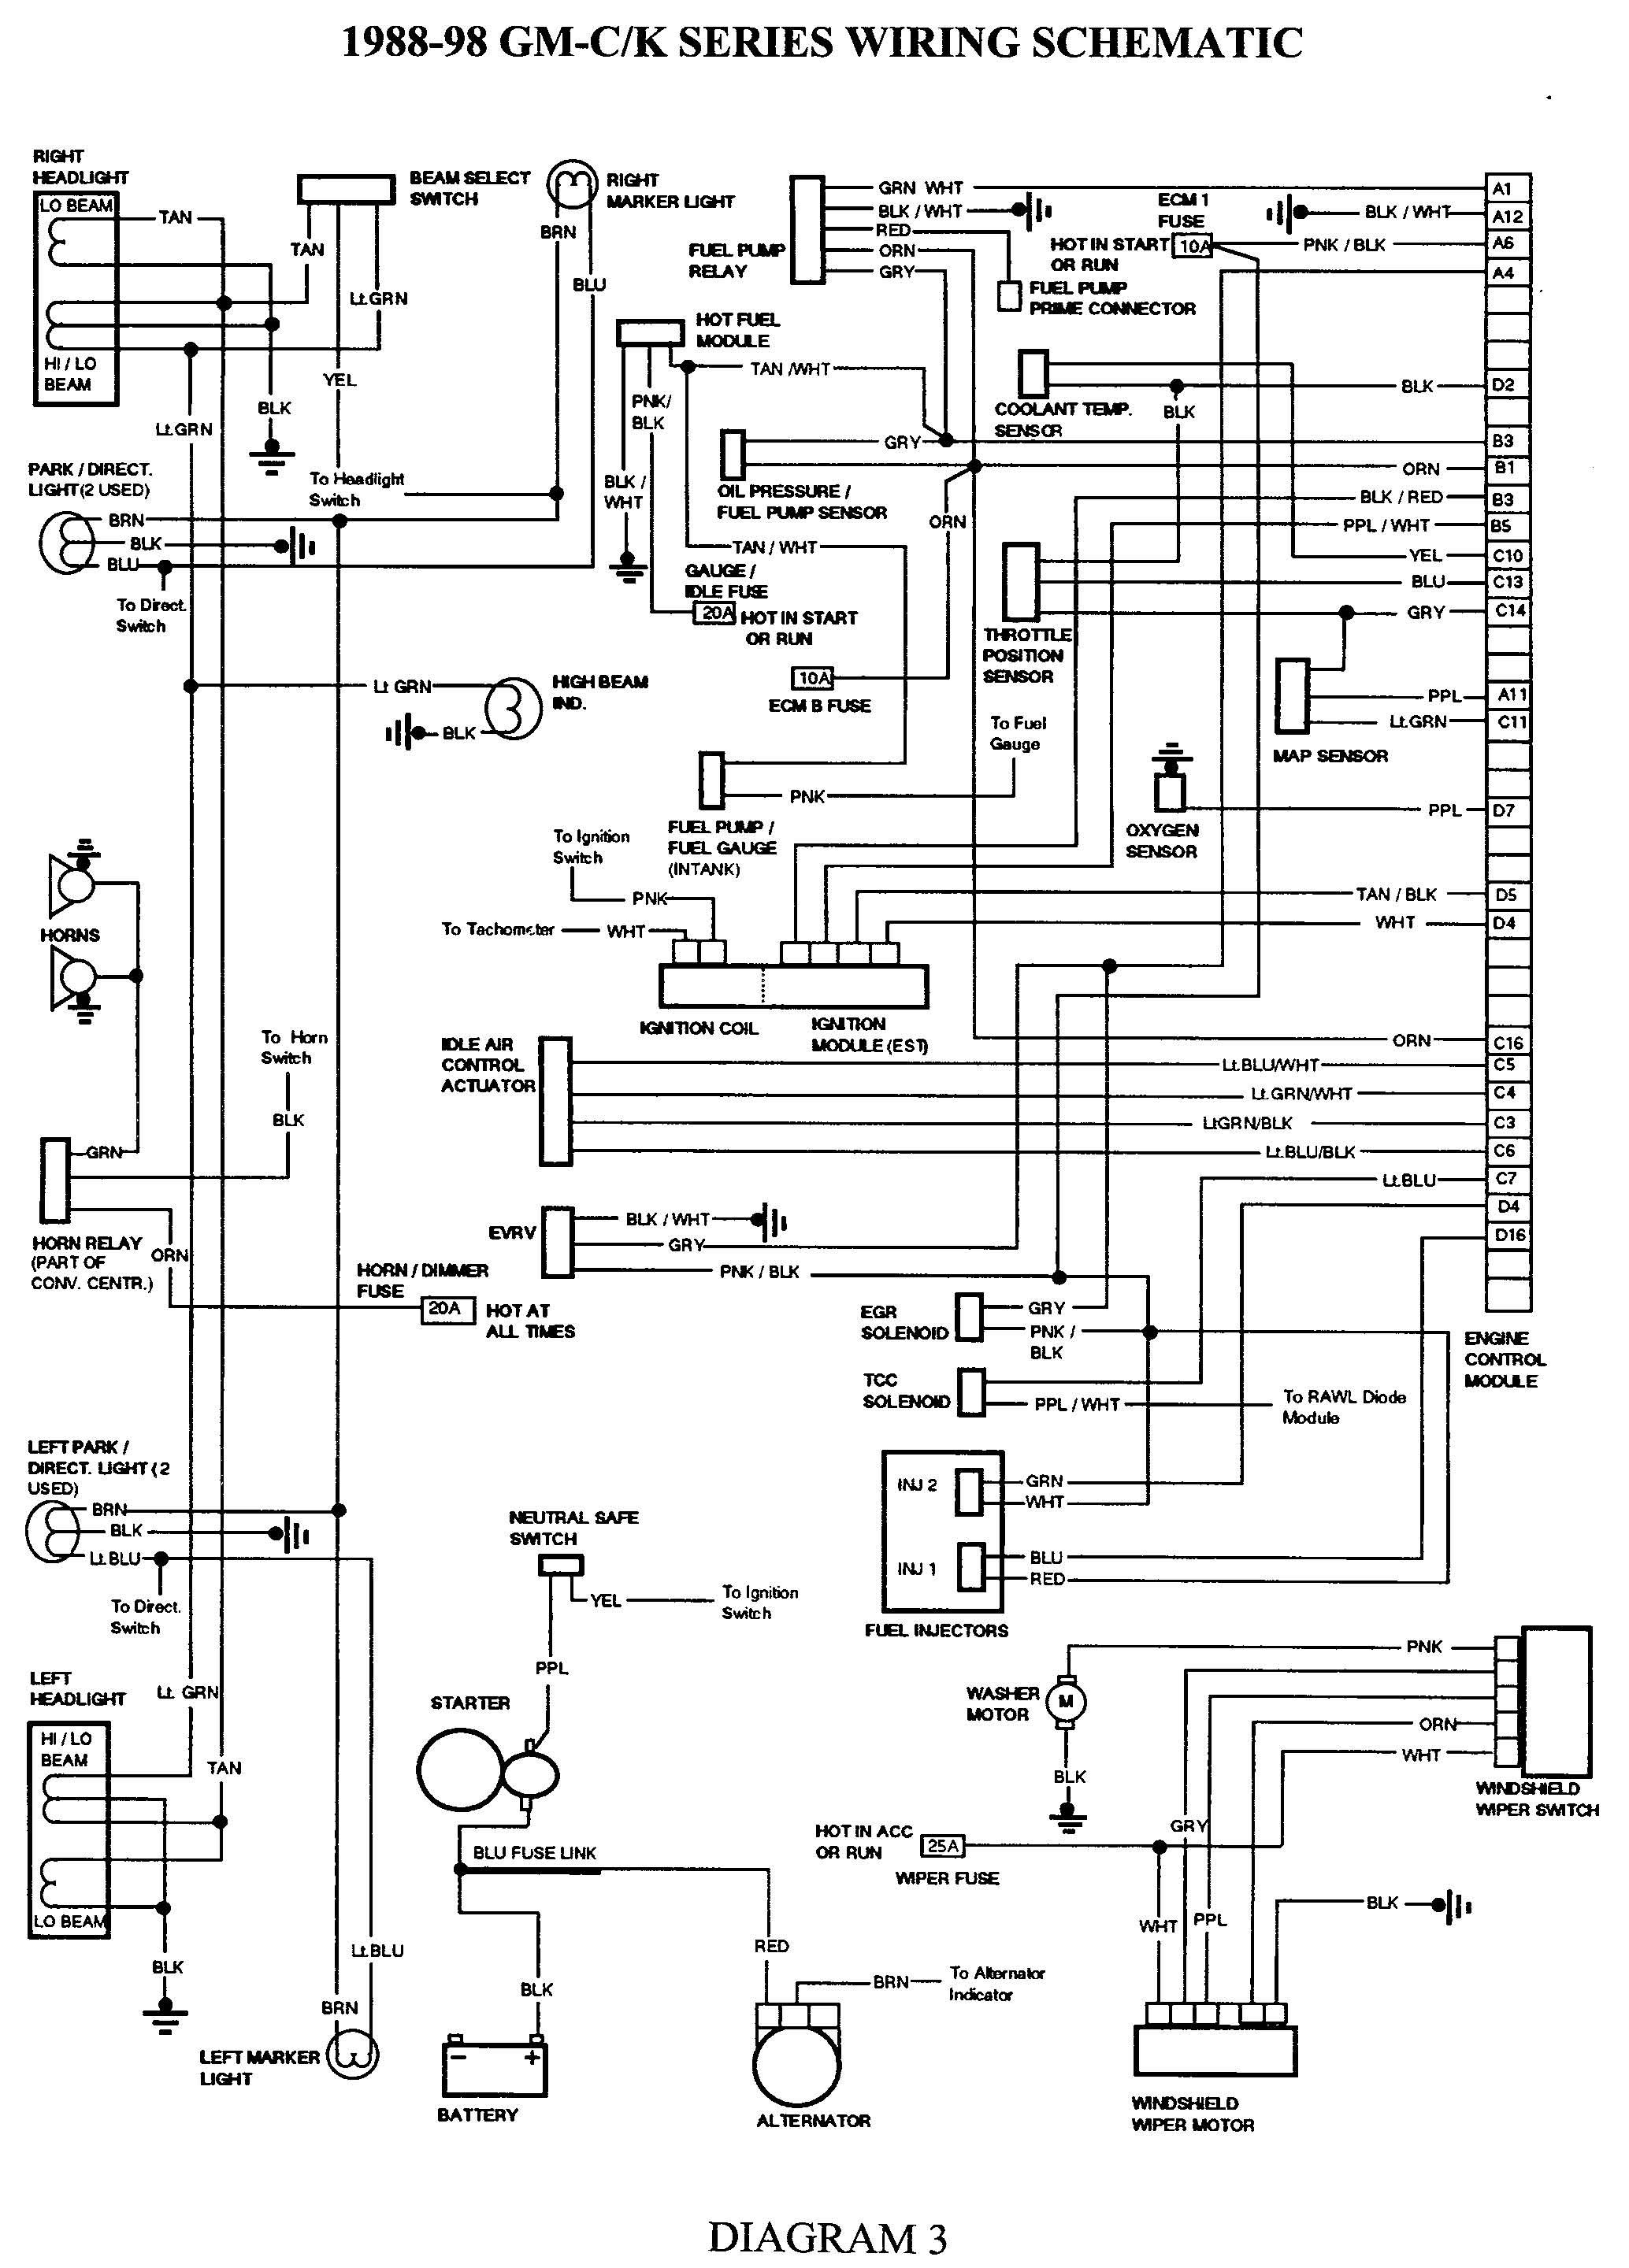 Diagram Of 98 Mercedes Ml320 Engine - Wiring Diagram Liry on c32 wiring diagram, e300 wiring diagram, c36 wiring diagram, s430 wiring diagram, chrysler 300 wiring diagram, 380sl wiring diagram, e320 wiring diagram, radio wiring diagram, chevelle wiring diagram, wiper motor wiring diagram, w163 window wiring diagram, painless wiring diagram, f250 wiring diagram, 300td wiring diagram, ford explorer wiring diagram, ml wiring diagram, cls550 wiring diagram, power window wiring diagram, c280 wiring diagram, engine wiring diagram,